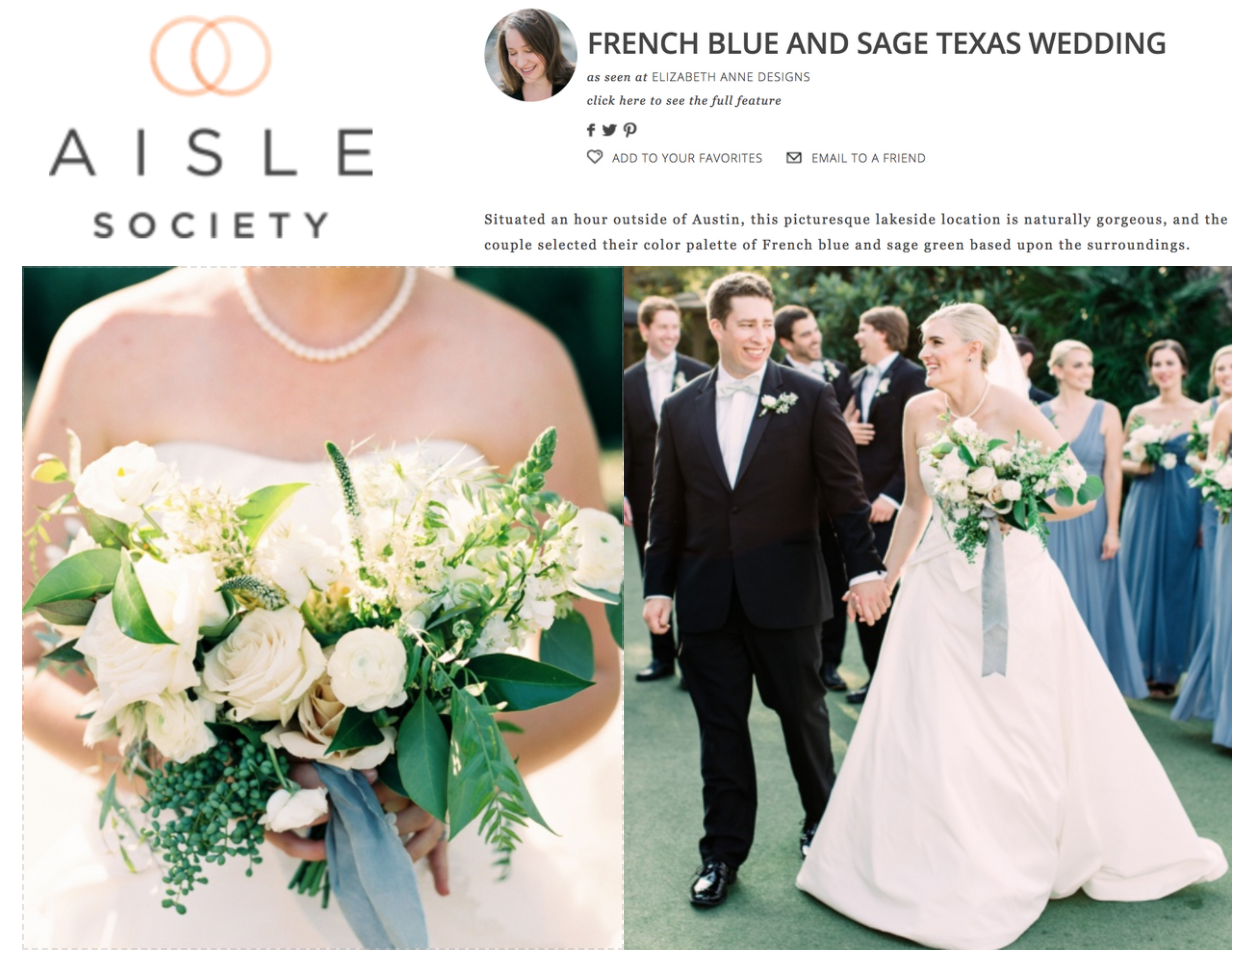 Aisle Society | FRENCH BLUE AND SAGE TEXAS WEDDING | Gypsy Floral & Events